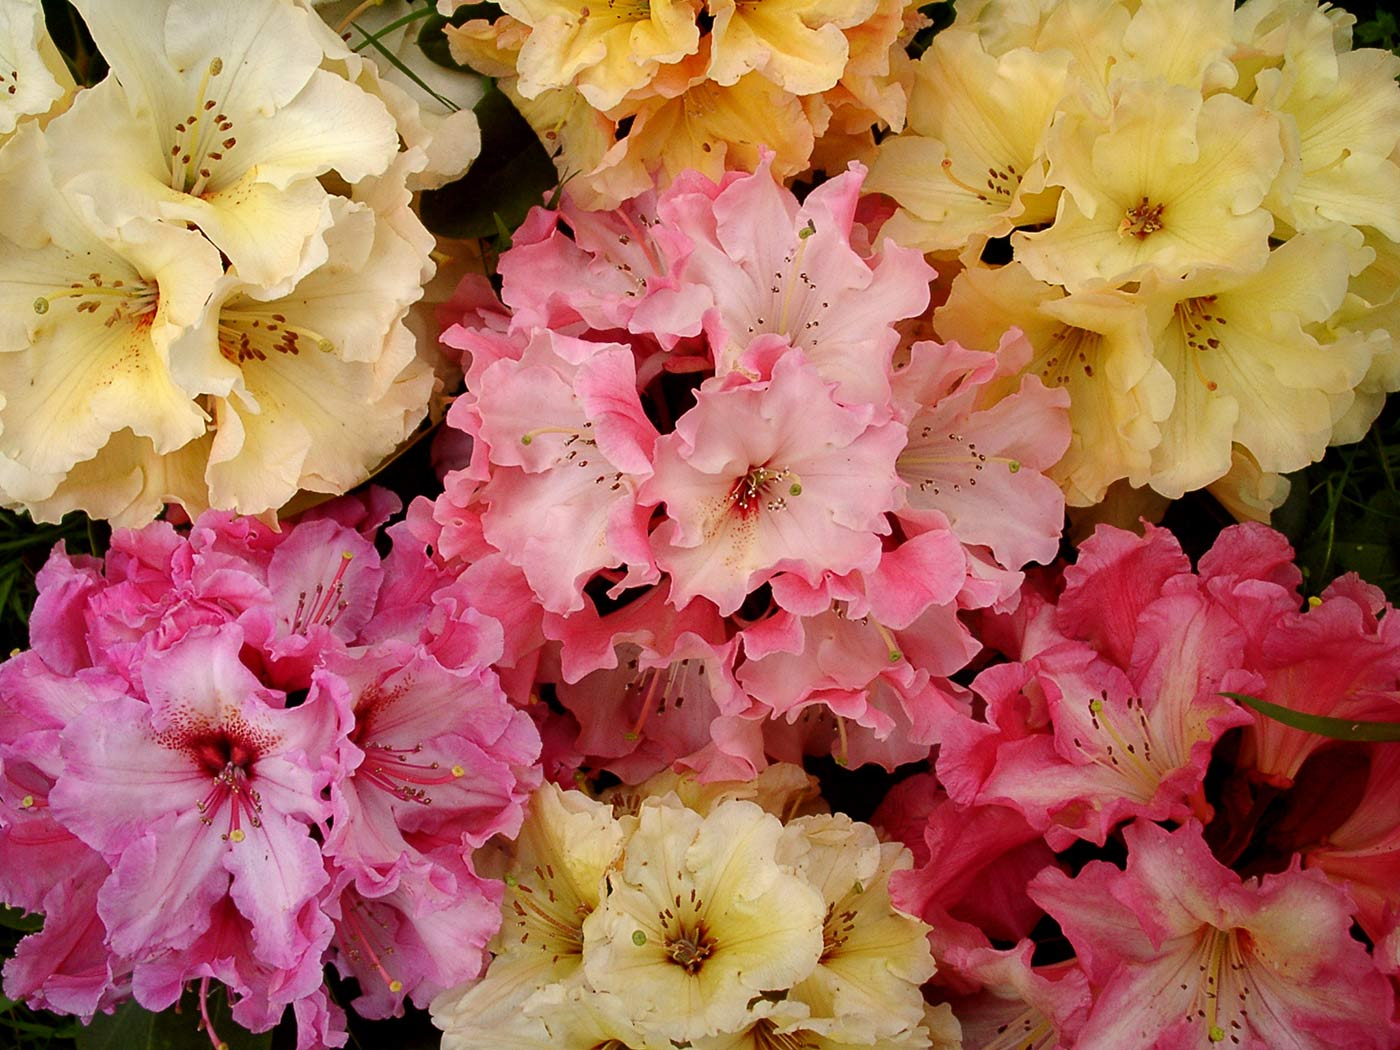 400 varieties of Rhododendron Species and Hybrids, from tiny dwarfs to giant trees.